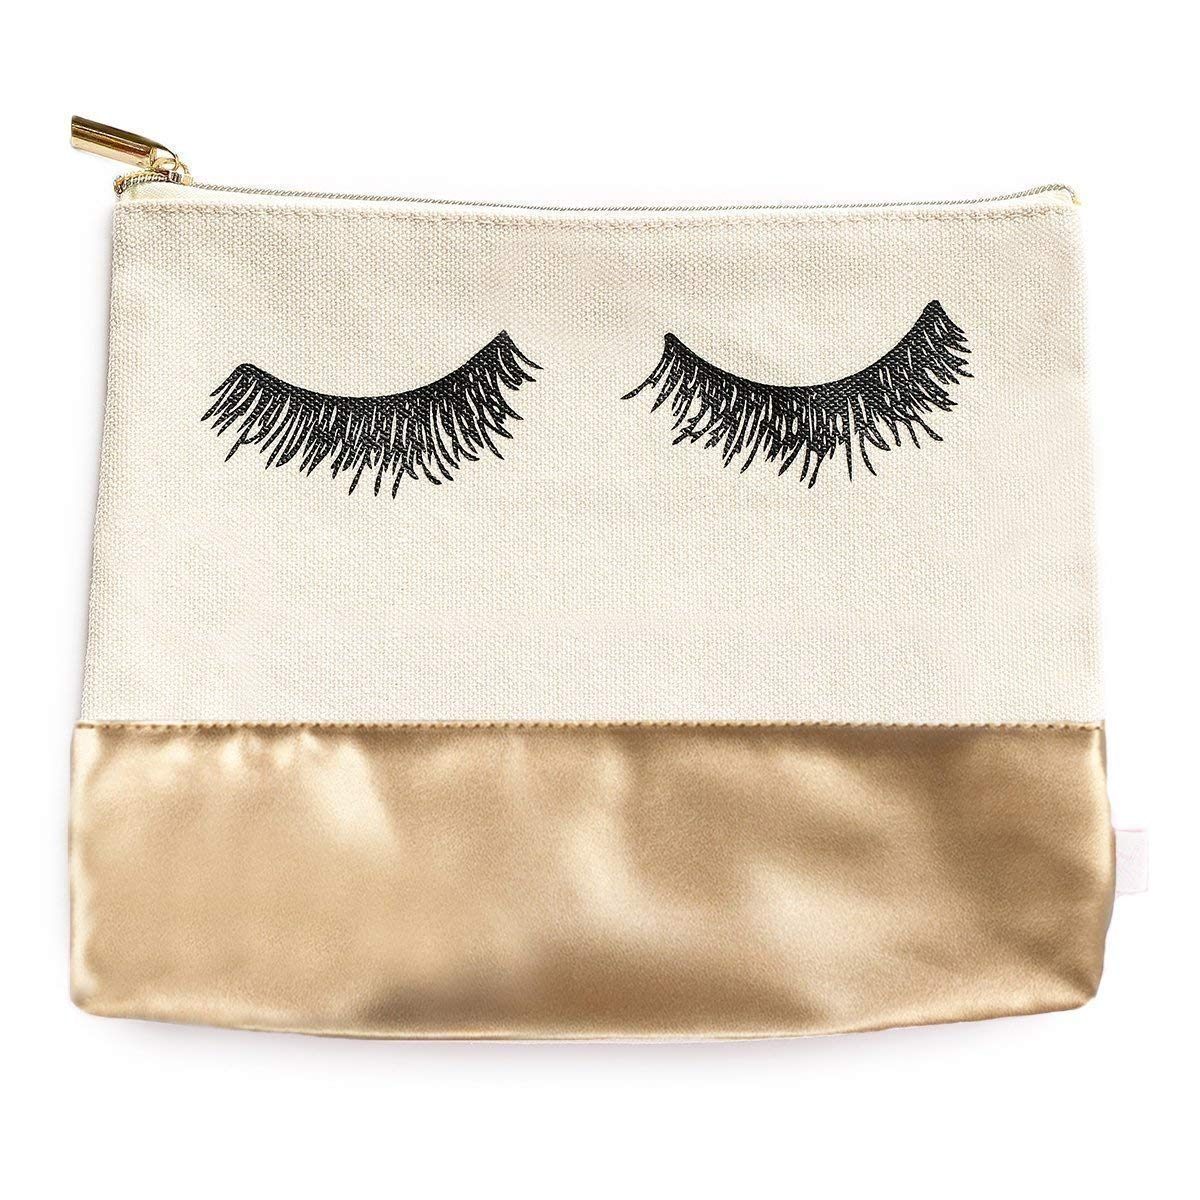 Eyelashes Gold Leather Makeup Bag | Large Chic Make-Up Organizer Travel Toiletry Accessories Pencil Case Cosmetic Clutch Bridesmaid Gift for Her Hand Drawn